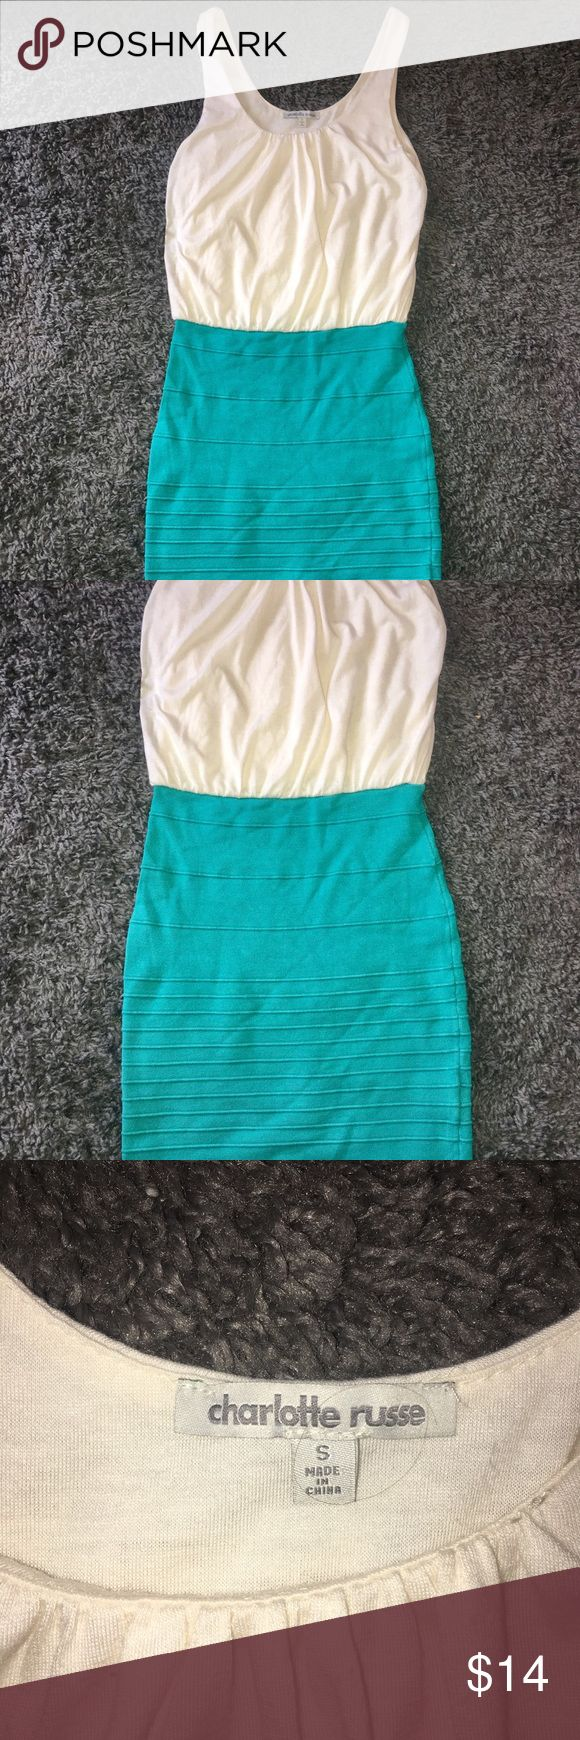 👠Charlotte Russe Teal & Beige Mini Dress SZ S👗 Minimal signs of wear. Please review all of the pictures for more details. Please take your time to view all photos & item description. All clothing is freshly laundered and from a smoke free home. Ready to be shipped, Fast Shipping!! Thanks for looking. Charlotte Russe Dresses Mini